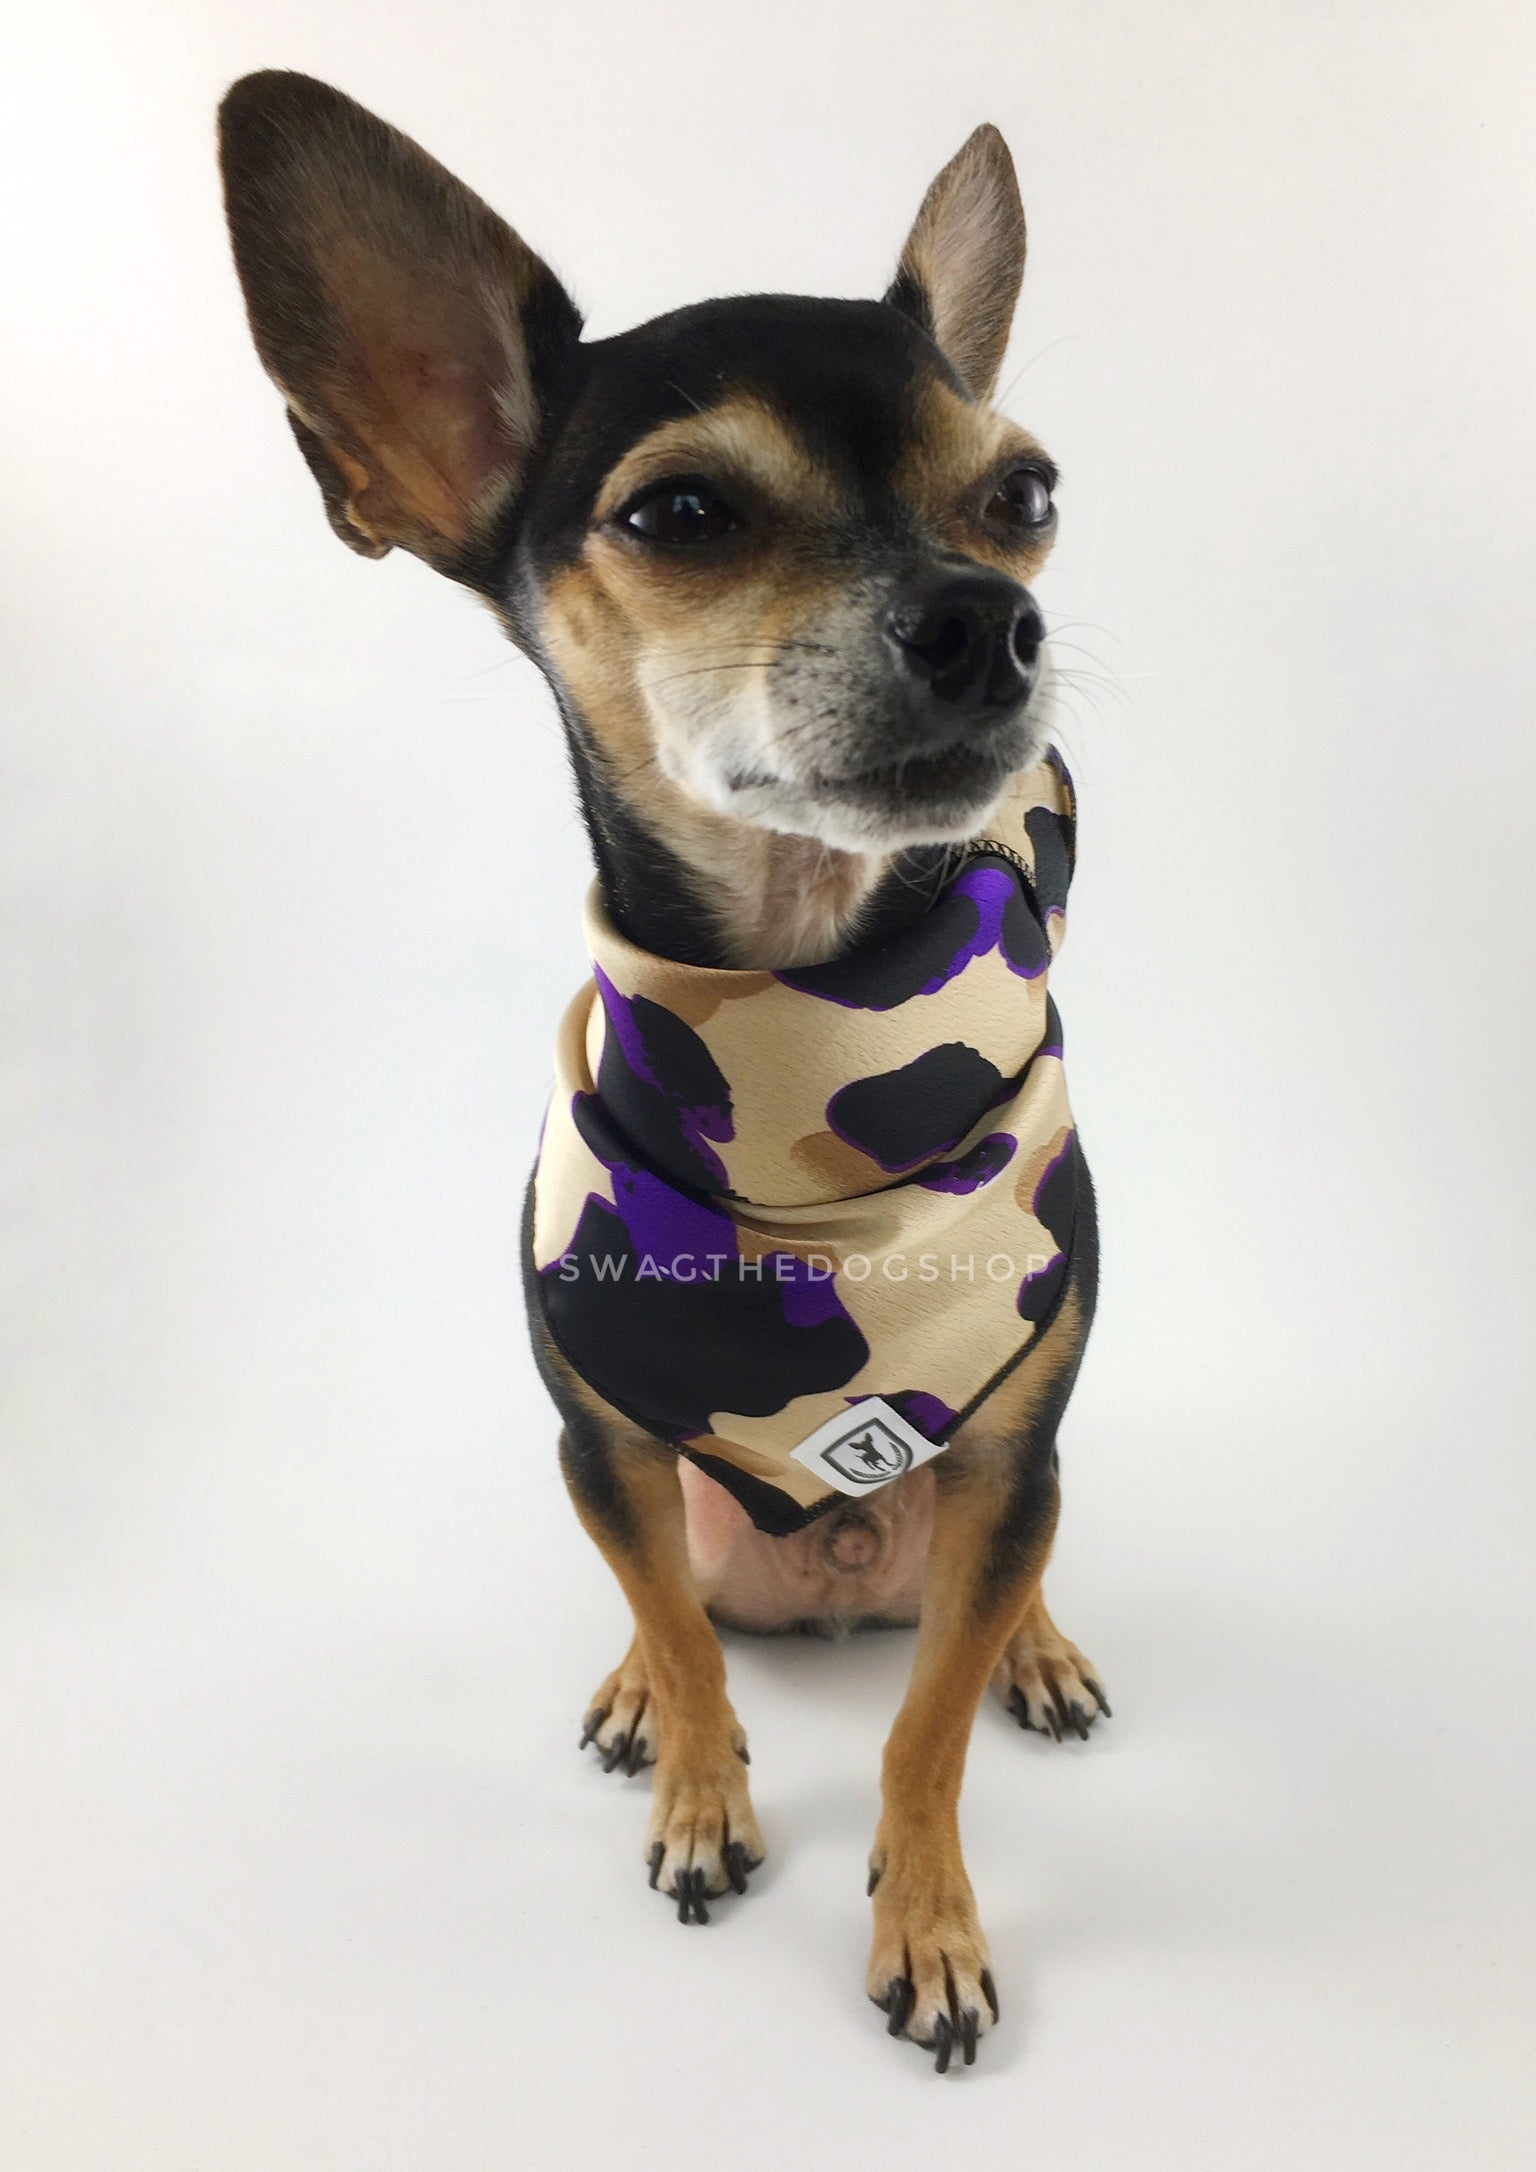 Fierce Beige with Purple Swagdana Scarf - Full Frontal View of Cute Chihuahua Wearing Swagdana Scarf as Bandana. Dog Bandana. Dog Scarf